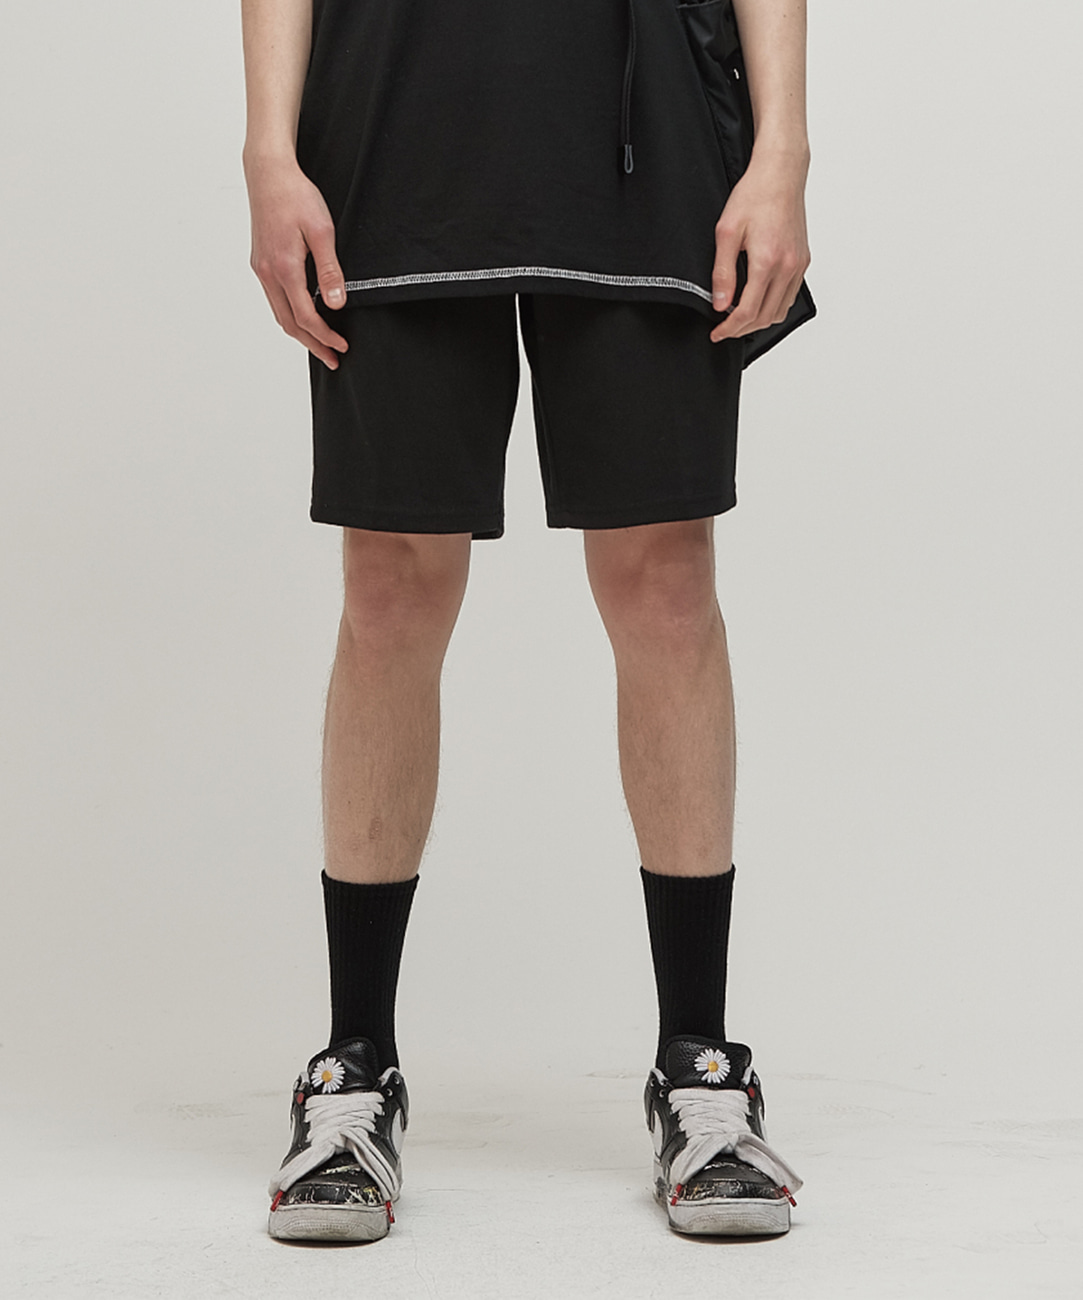 DWS LABEL SHORTS(BLACK)